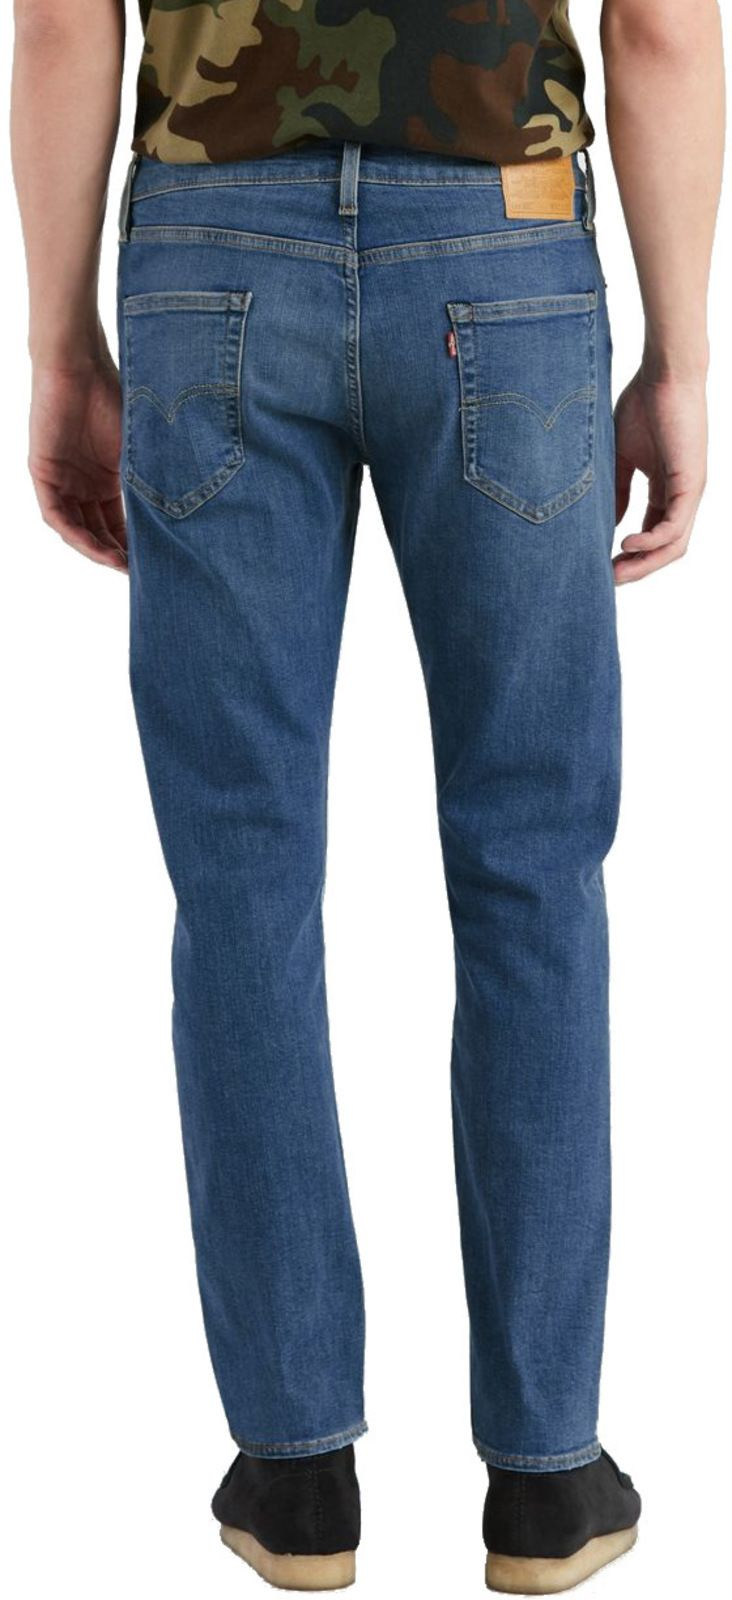 Levi's 502 Regular Taper Fit Denim Jeans Crocodile Adapt Blue